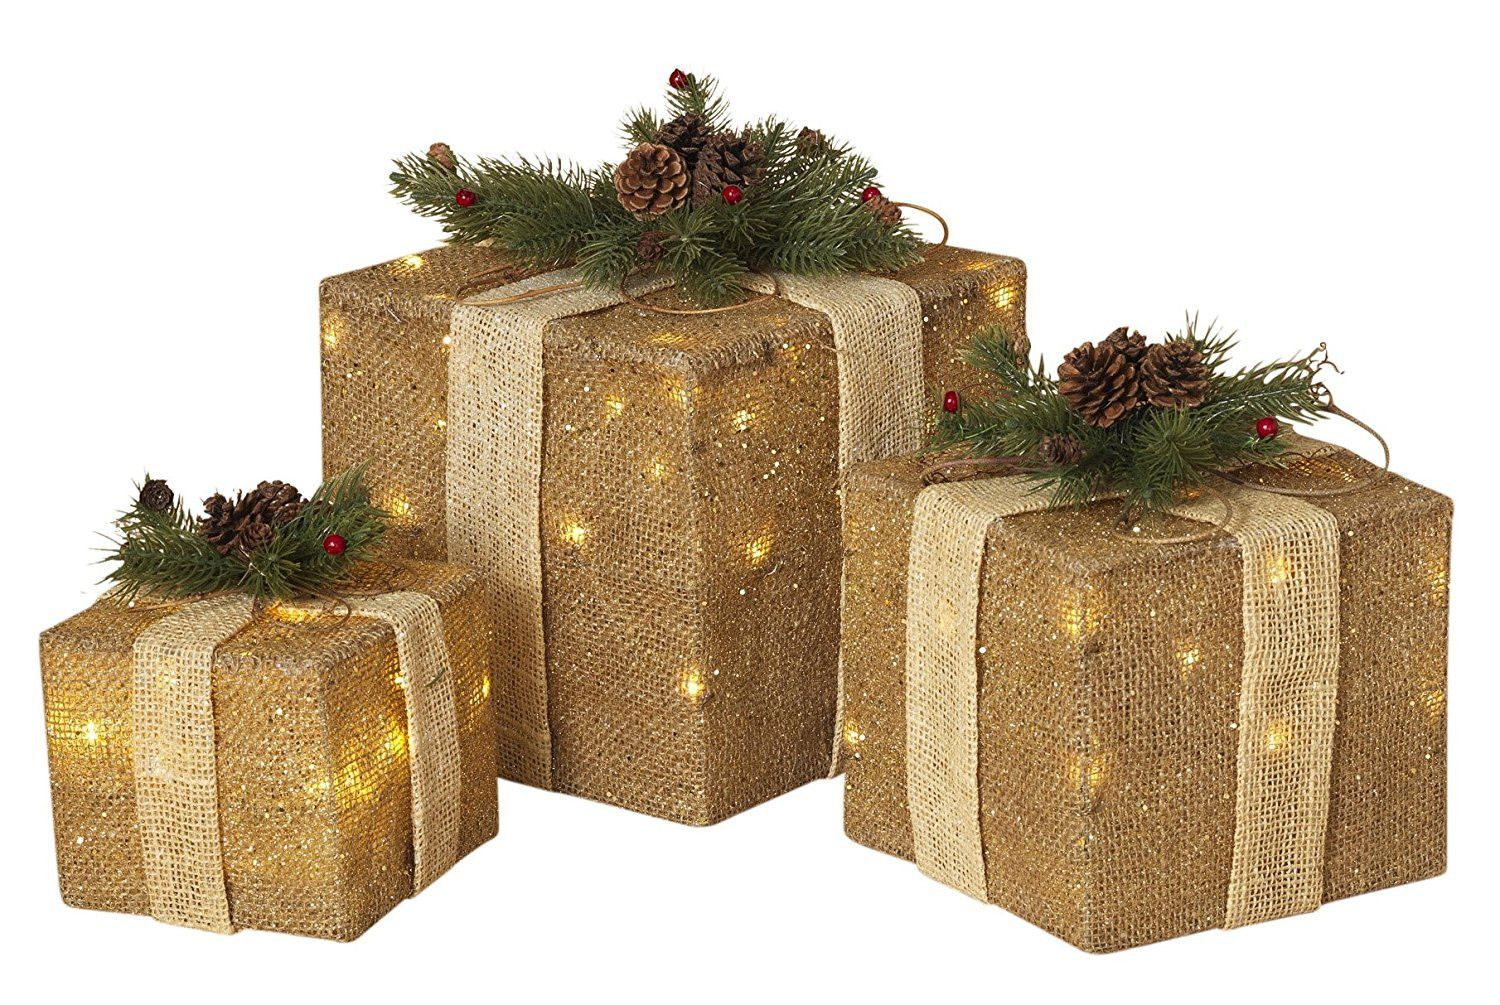 Large lighted outdoor christmas ornaments - Set Of 3 Large Lighted Burlap Holiday Gift Boxes Indoor Outdoor Christmas Decoration